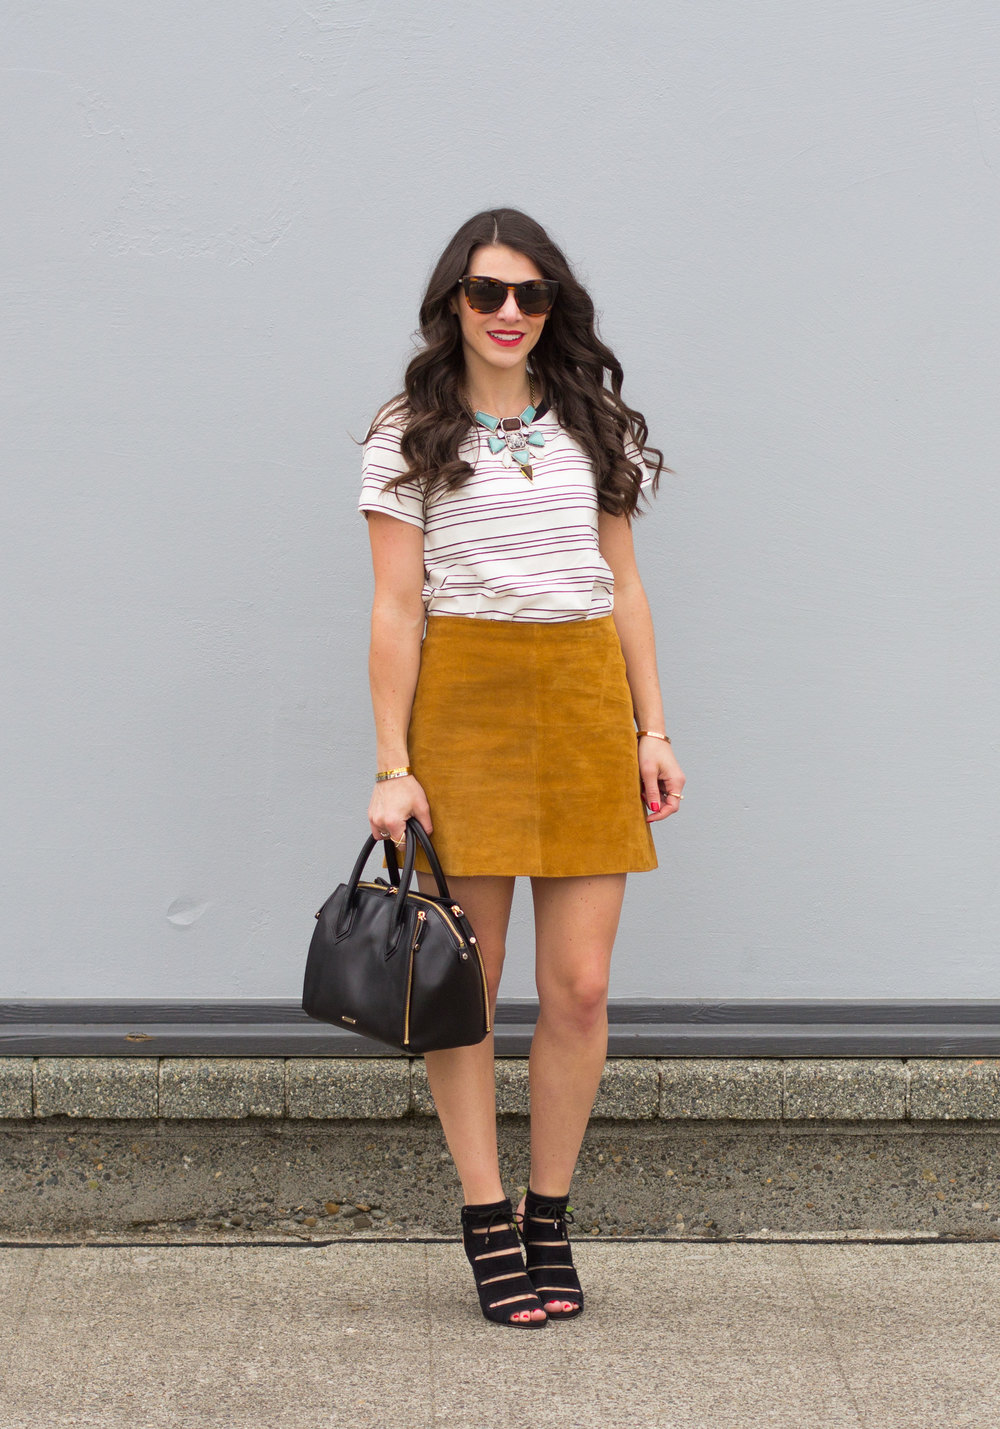 Strpe t-shirt outfits for summer, suede skirt styled for summer, Seychelles Play Along Heels, Rebecca Minkoff